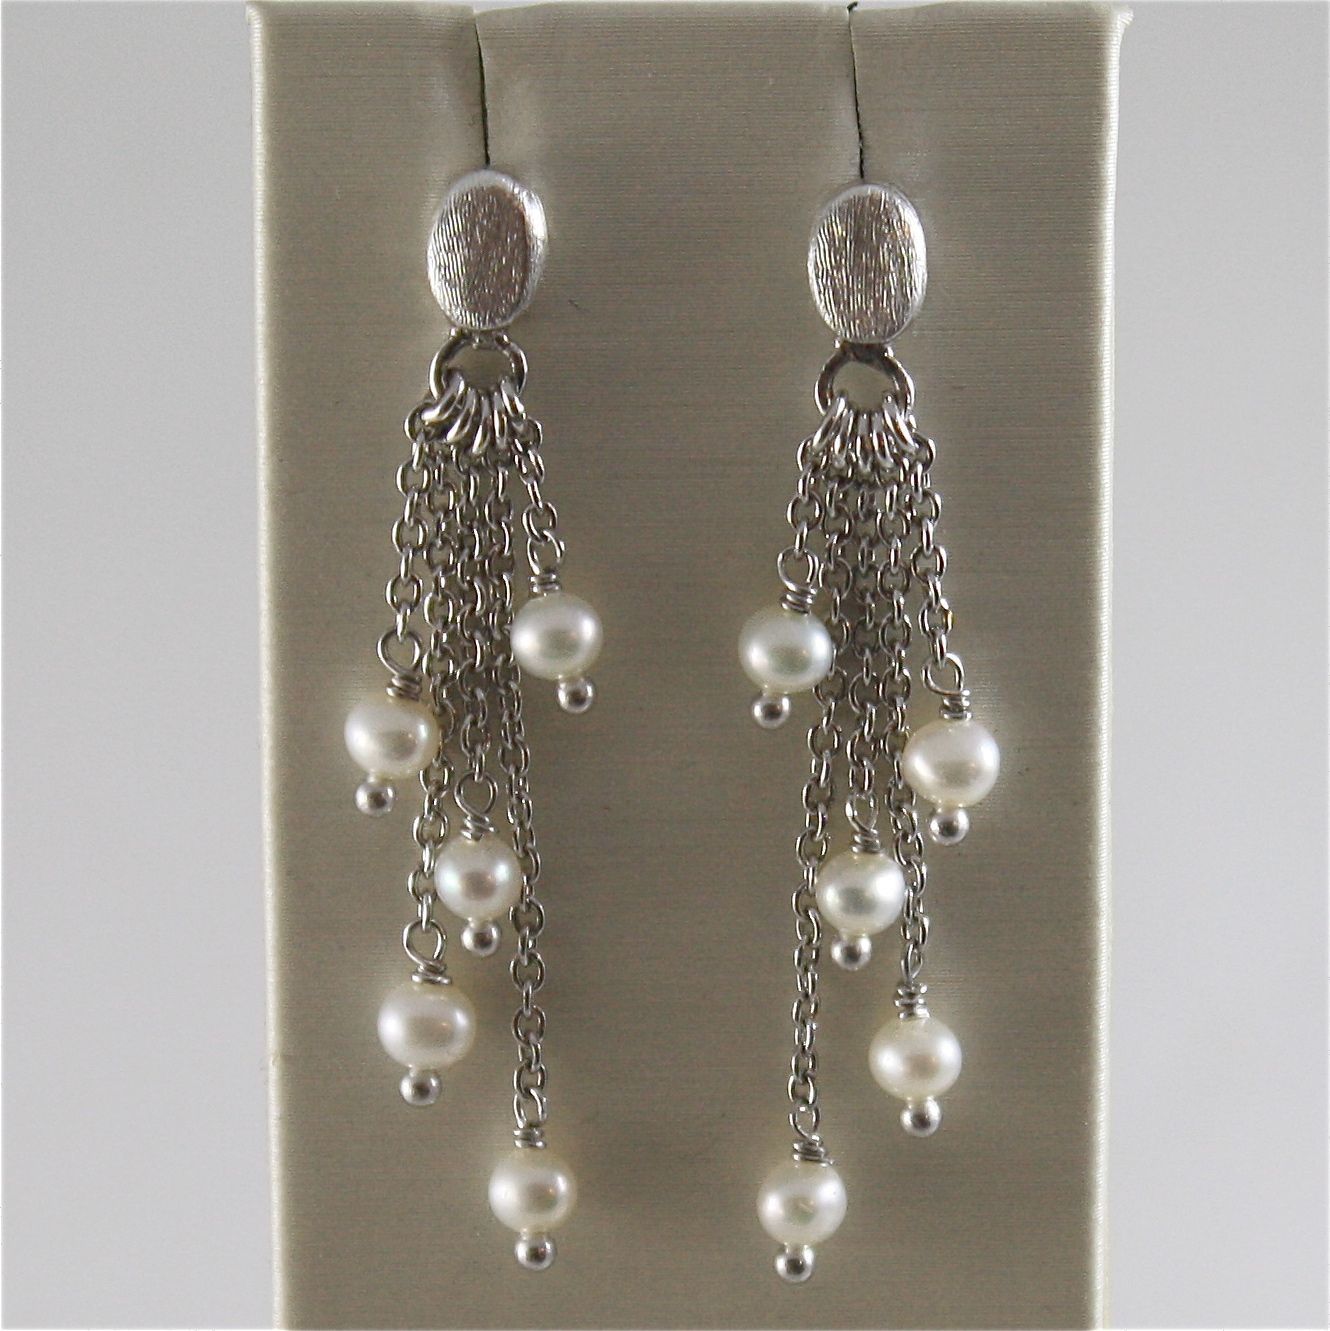 925 RODIUM SILVER EARRINGS WITH WHITE FRESHWATER PEARLS MADE IN ITALY 1.77 IN